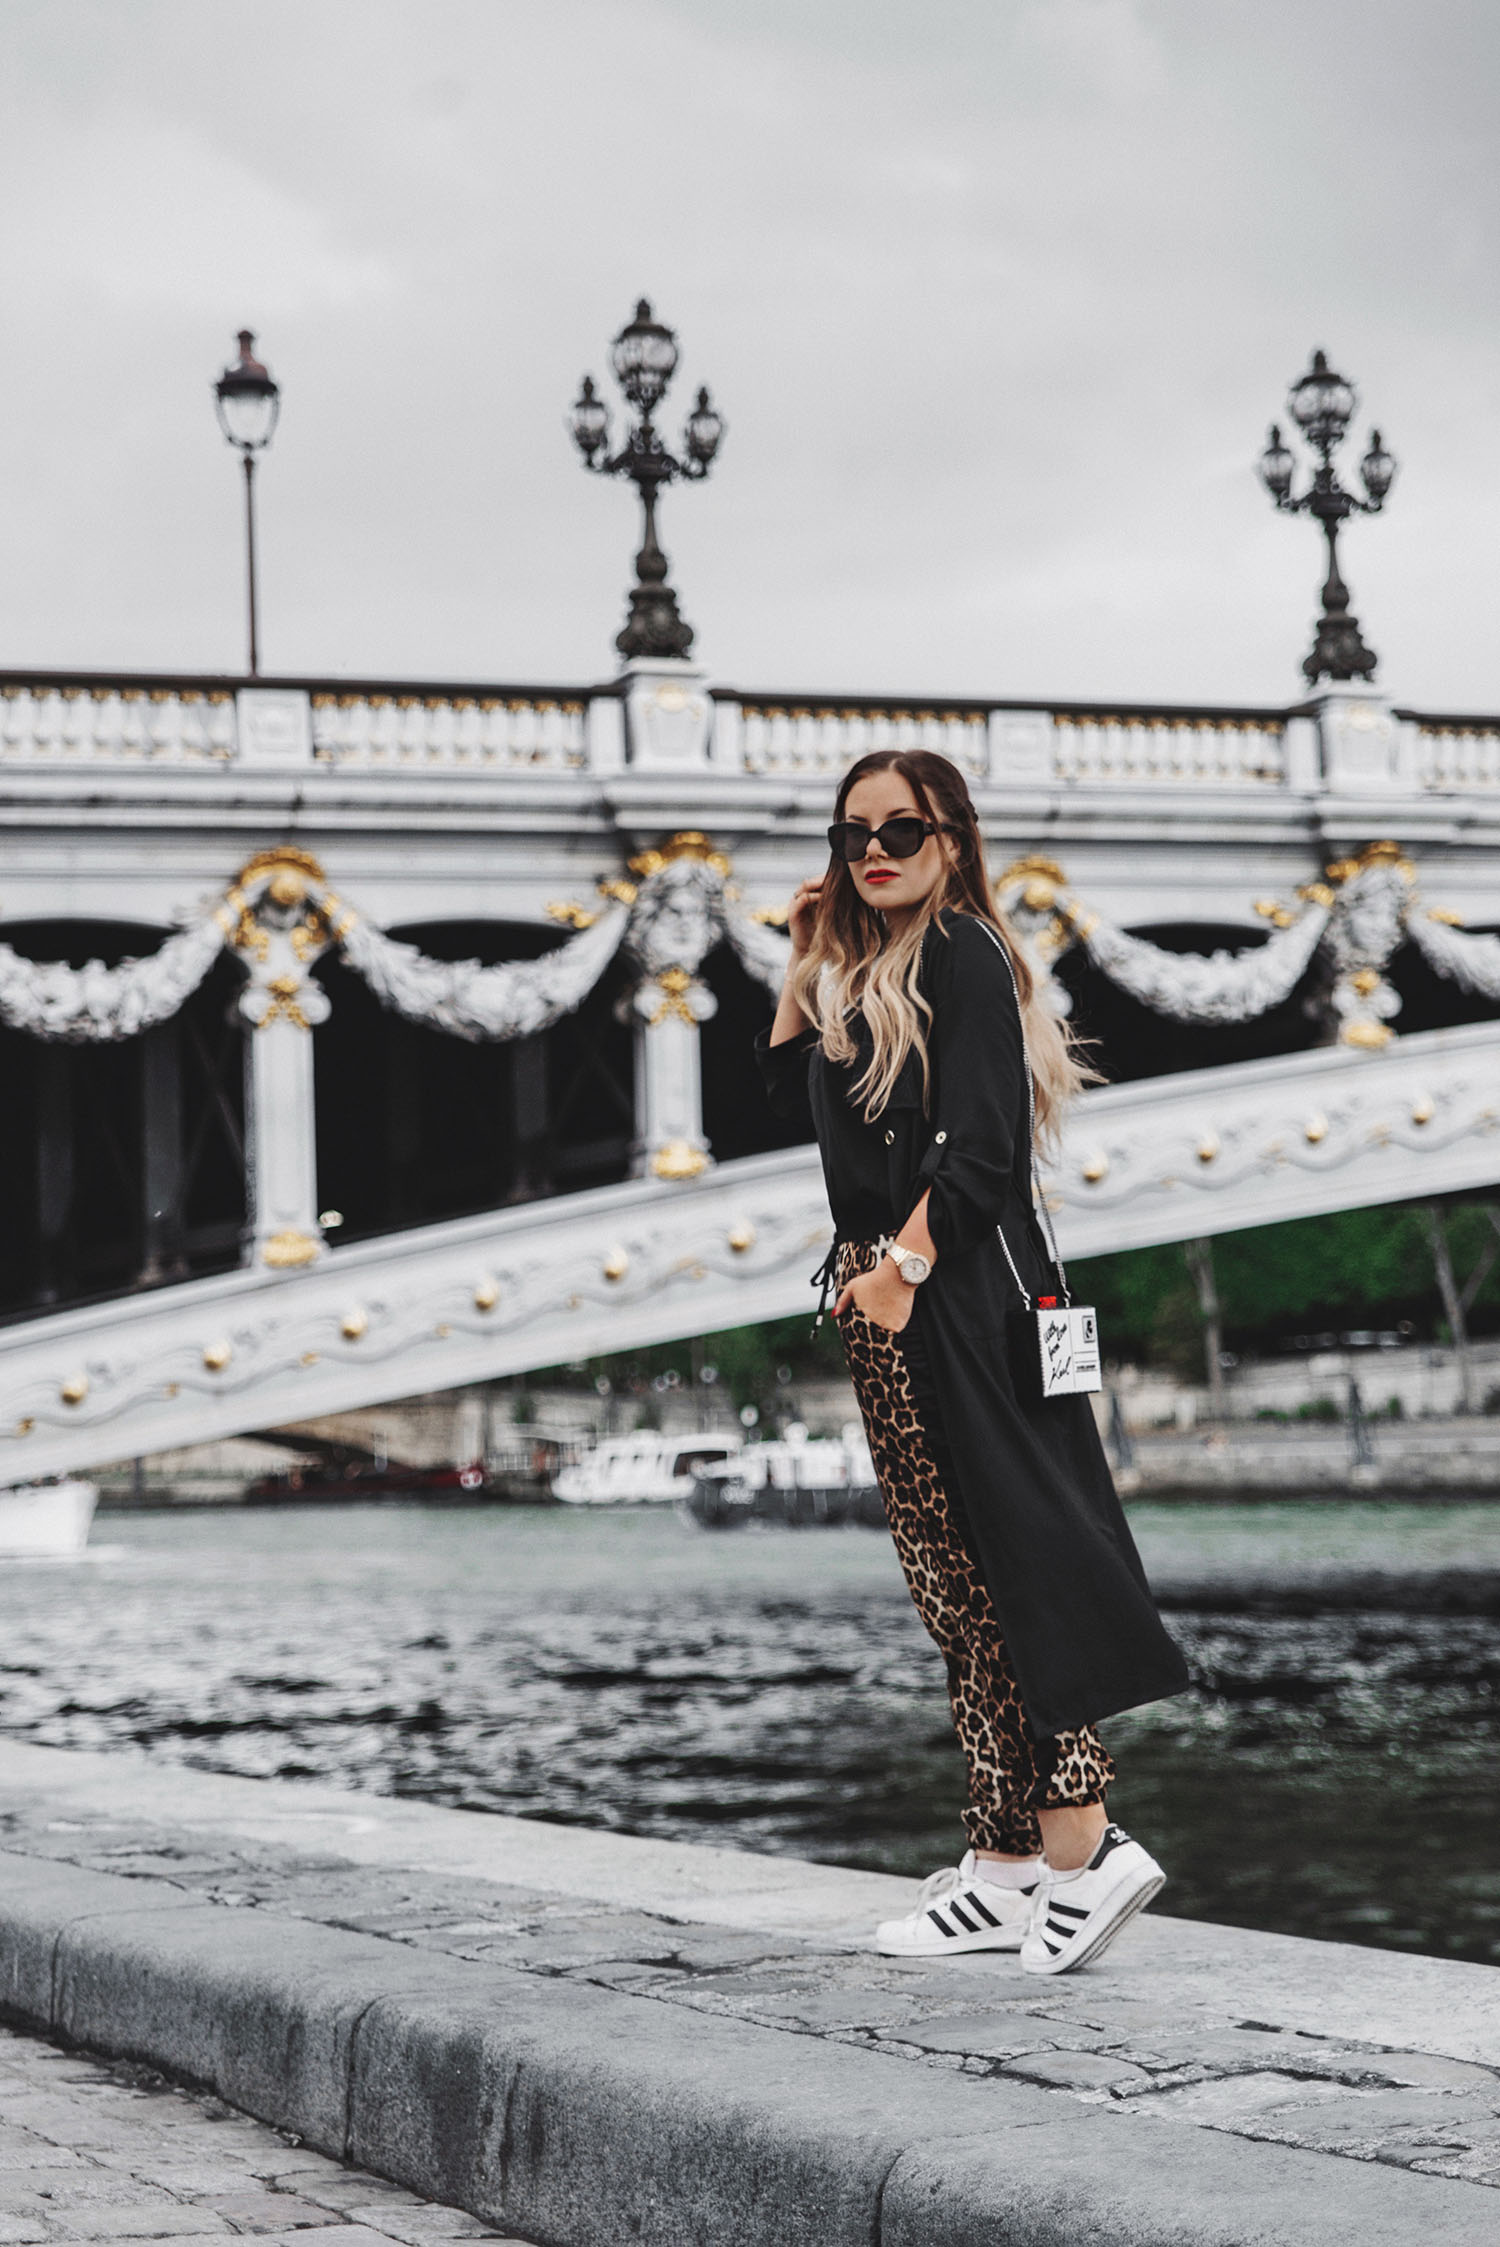 Travel in Style Outfit Idea with Leopard Pants, Black Cardigan & Karl Lagerfeld Clutch